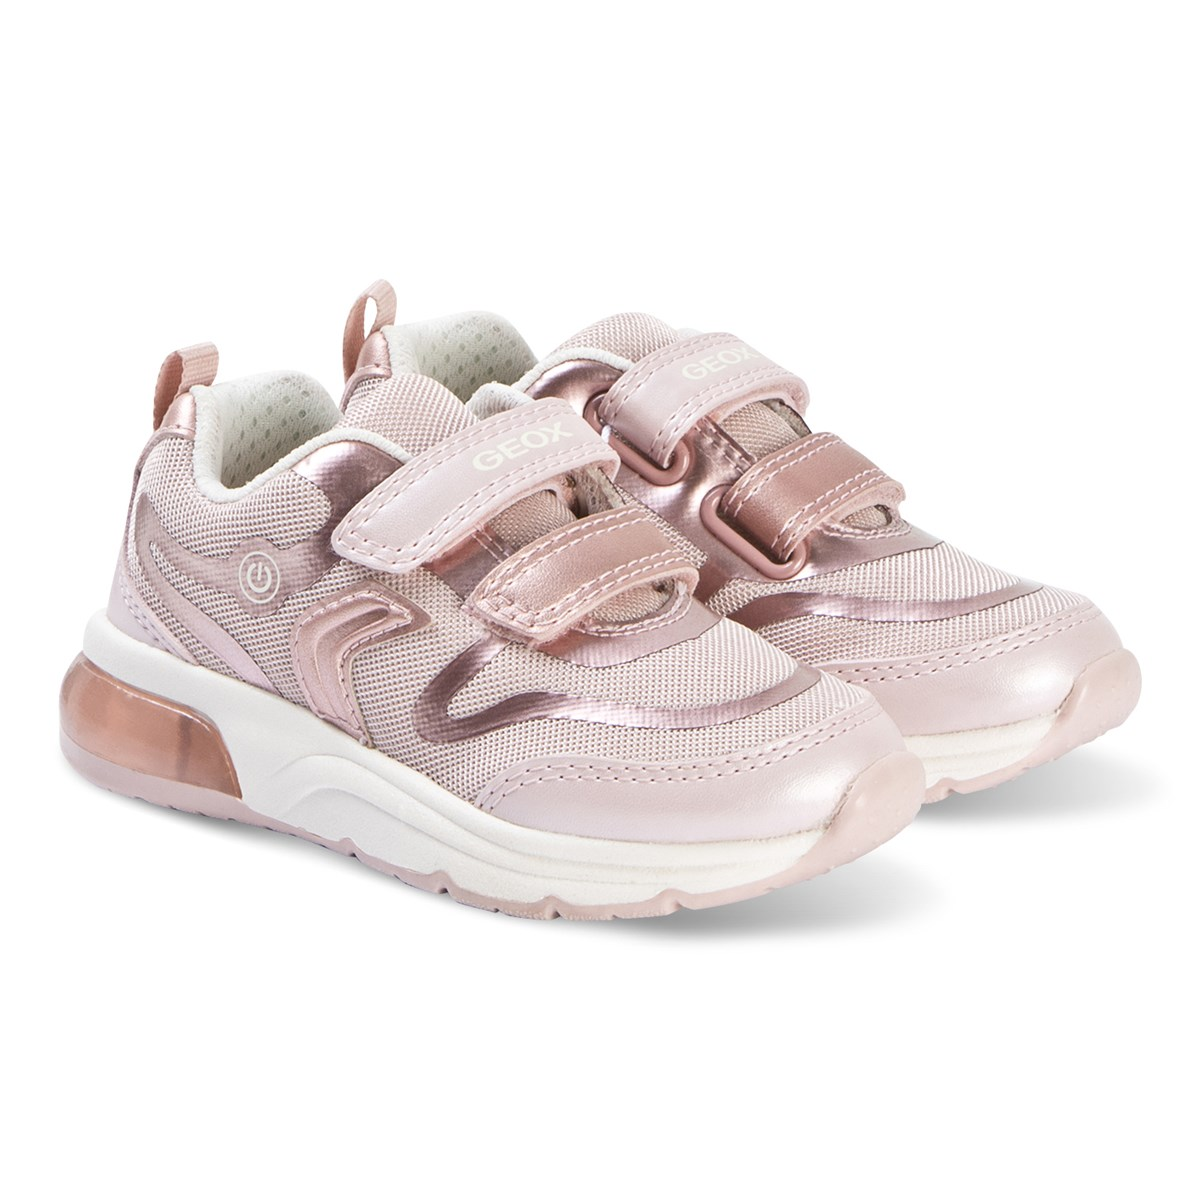 Rose Gold Spaceclub Velcro Trainers